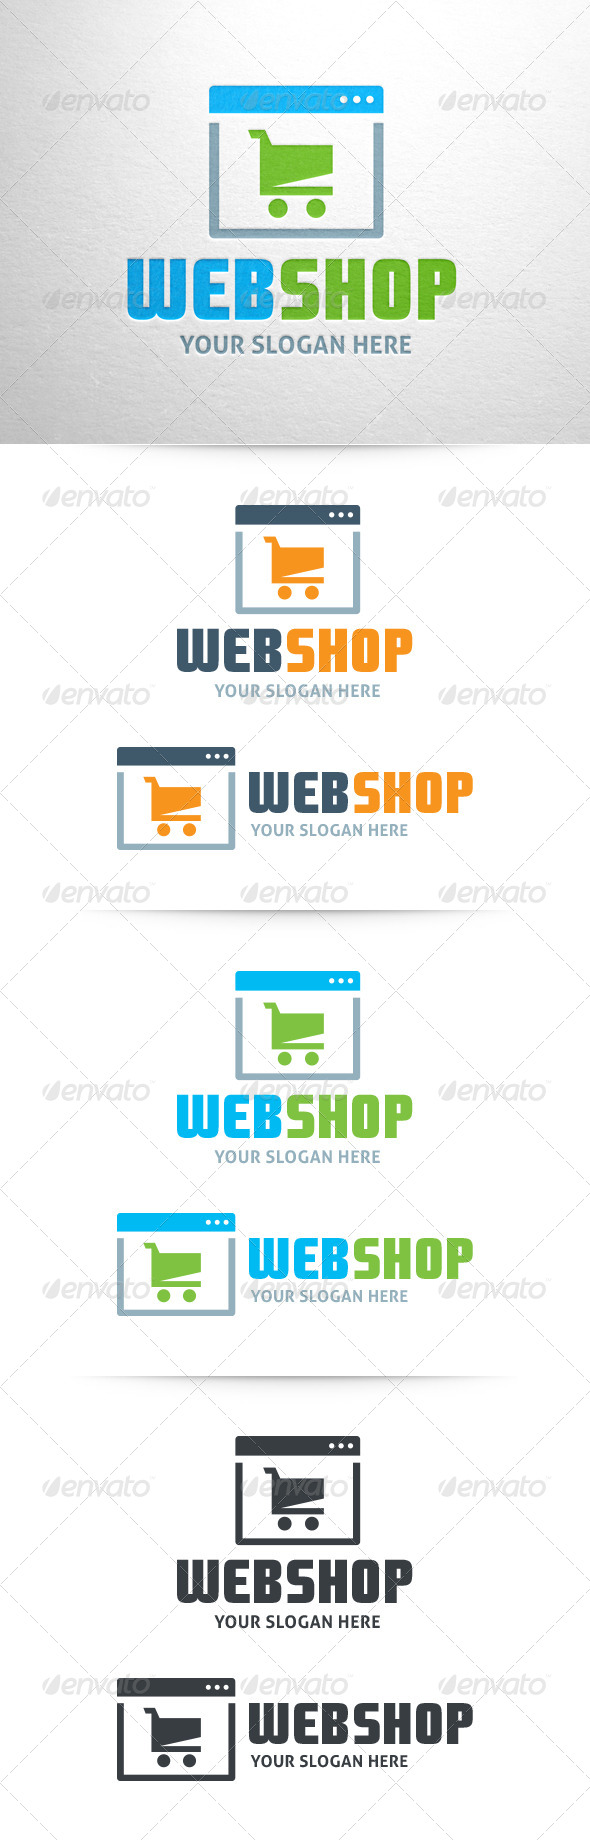 GraphicRiver Webshop Logo Template 6393631